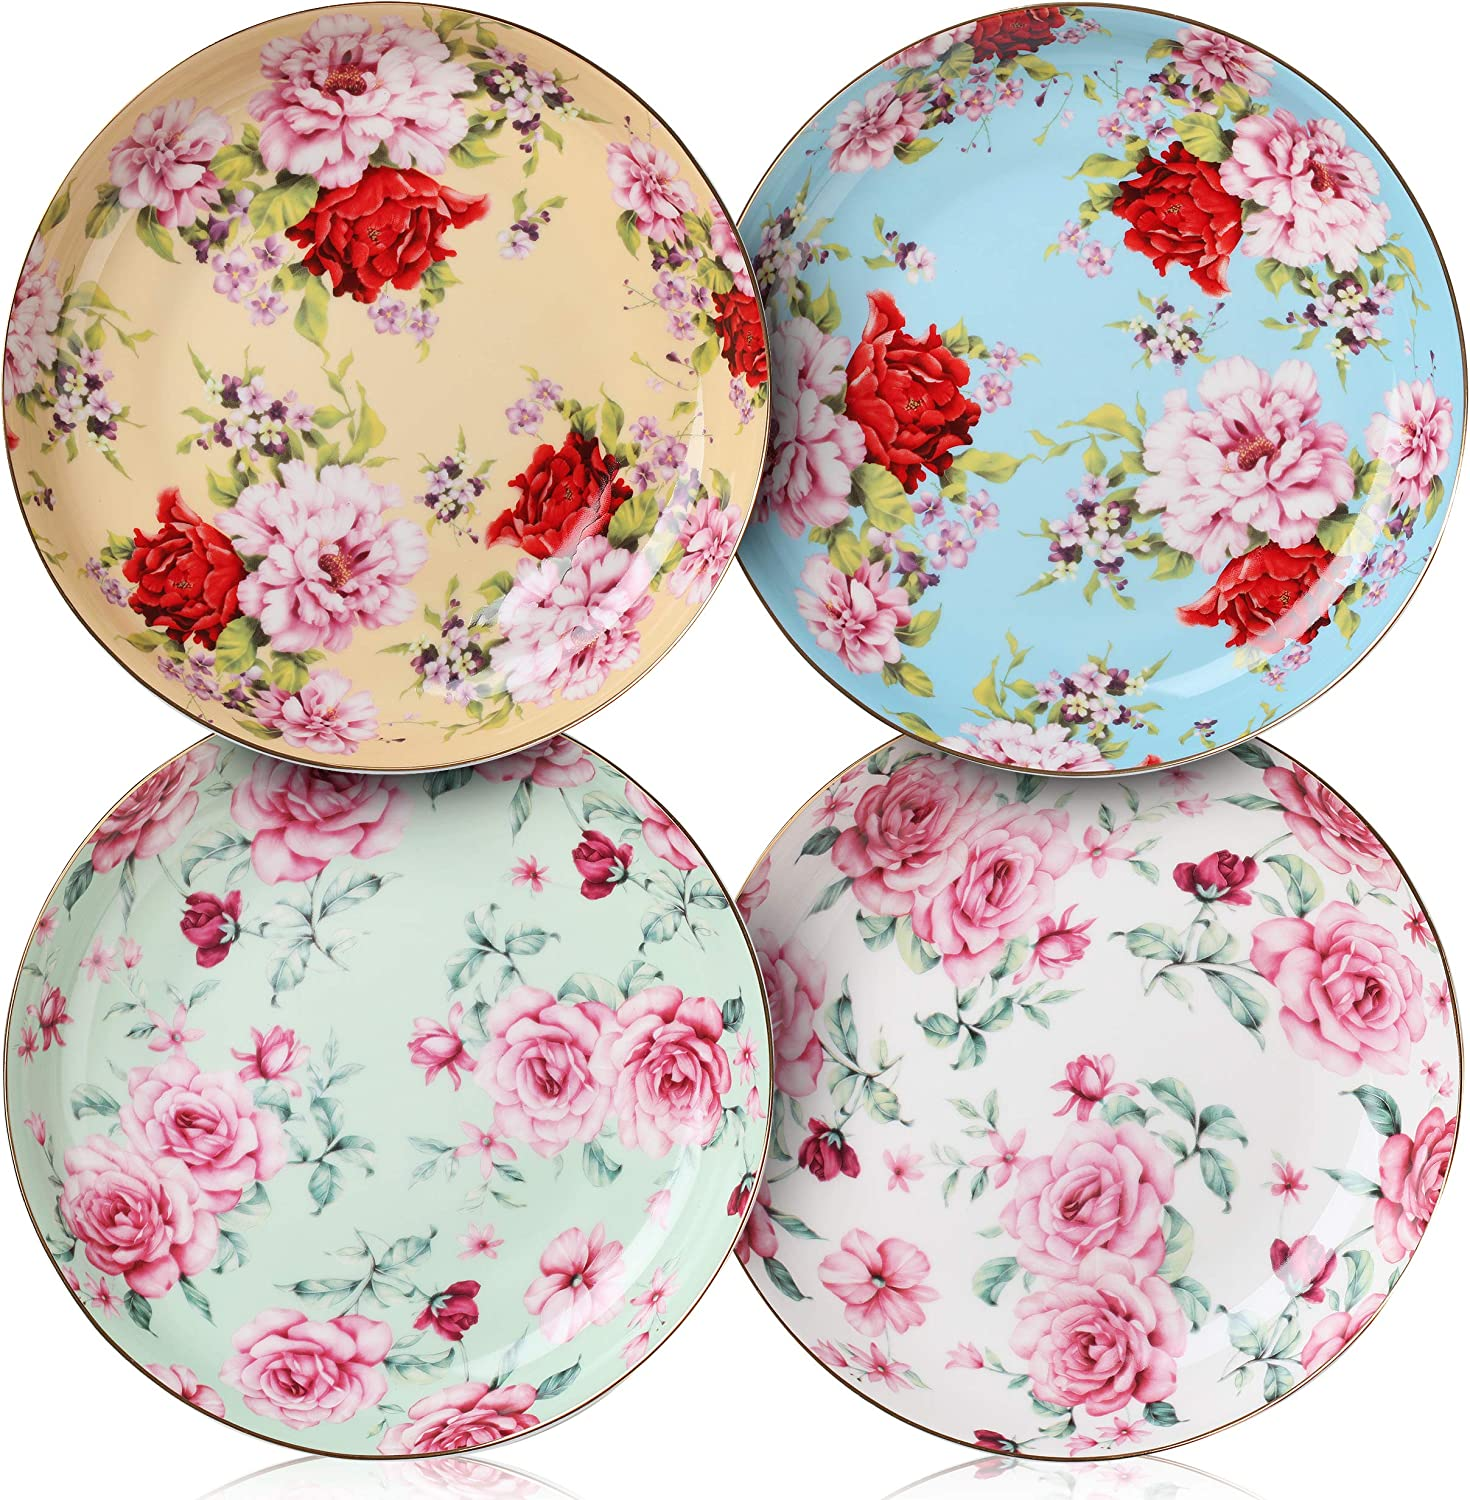 BTaT- Dessert Plates, 8 inch, Set of 4, Porcelain Bone China, Appetizer Plates, Floral Plates, Salad Plates, Small Plates, Small Plates Set, Small Dishes, Dinnerware, Salad Plates